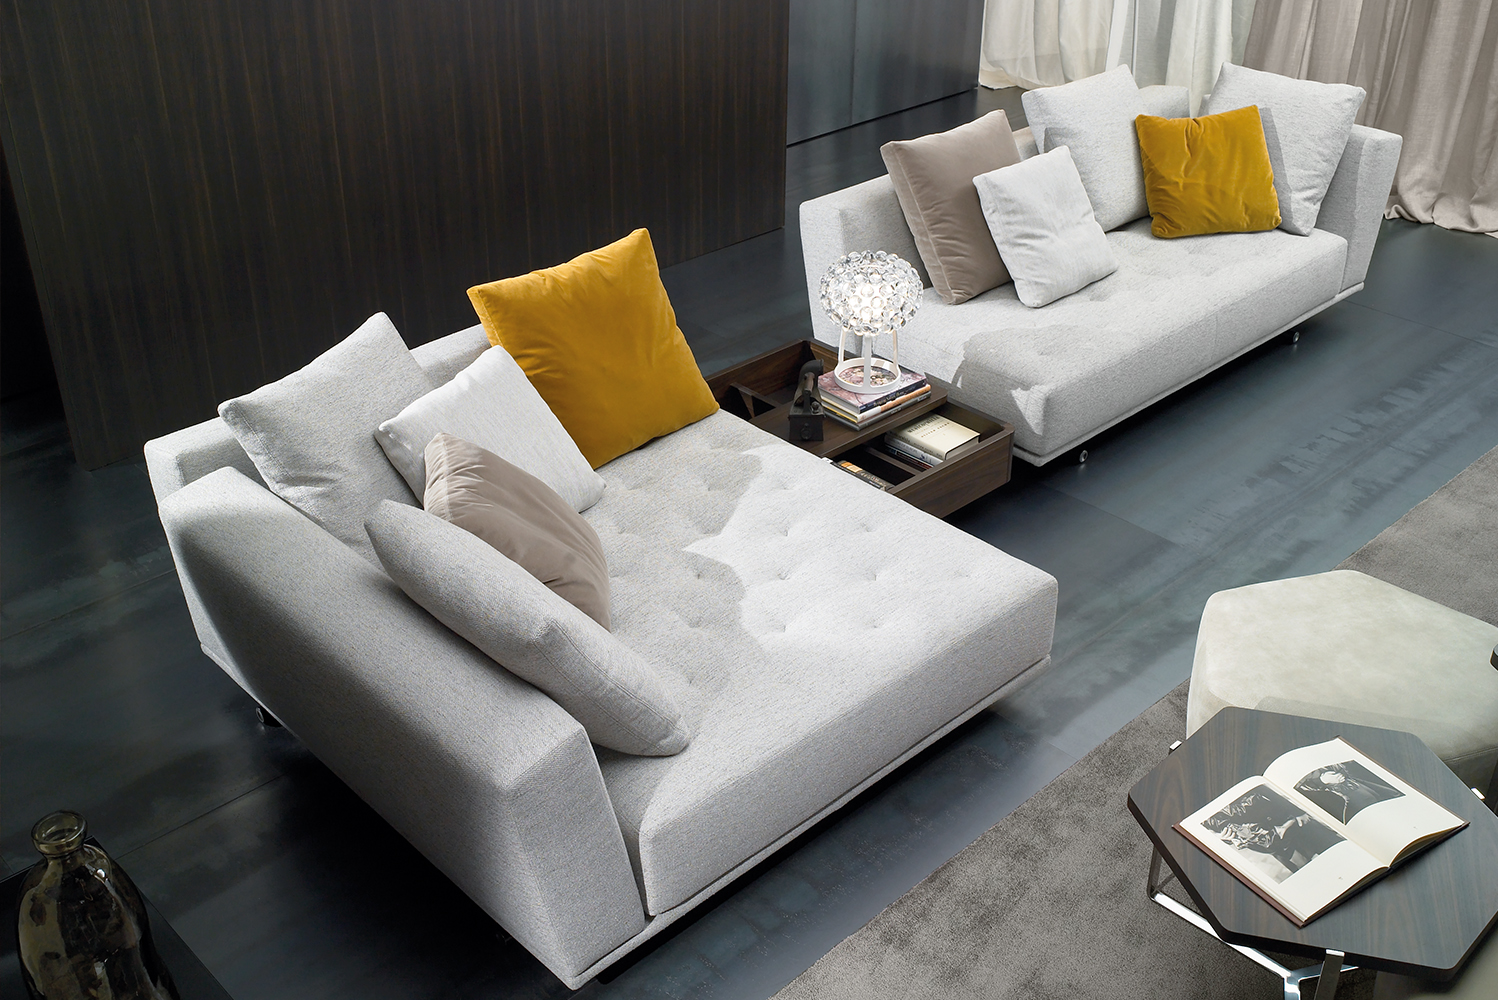 Designed by G. Vegni and G. Gualtierotti, Mandalay is a seat range based on one single seat cushion with padded upholstery in staggered rows.